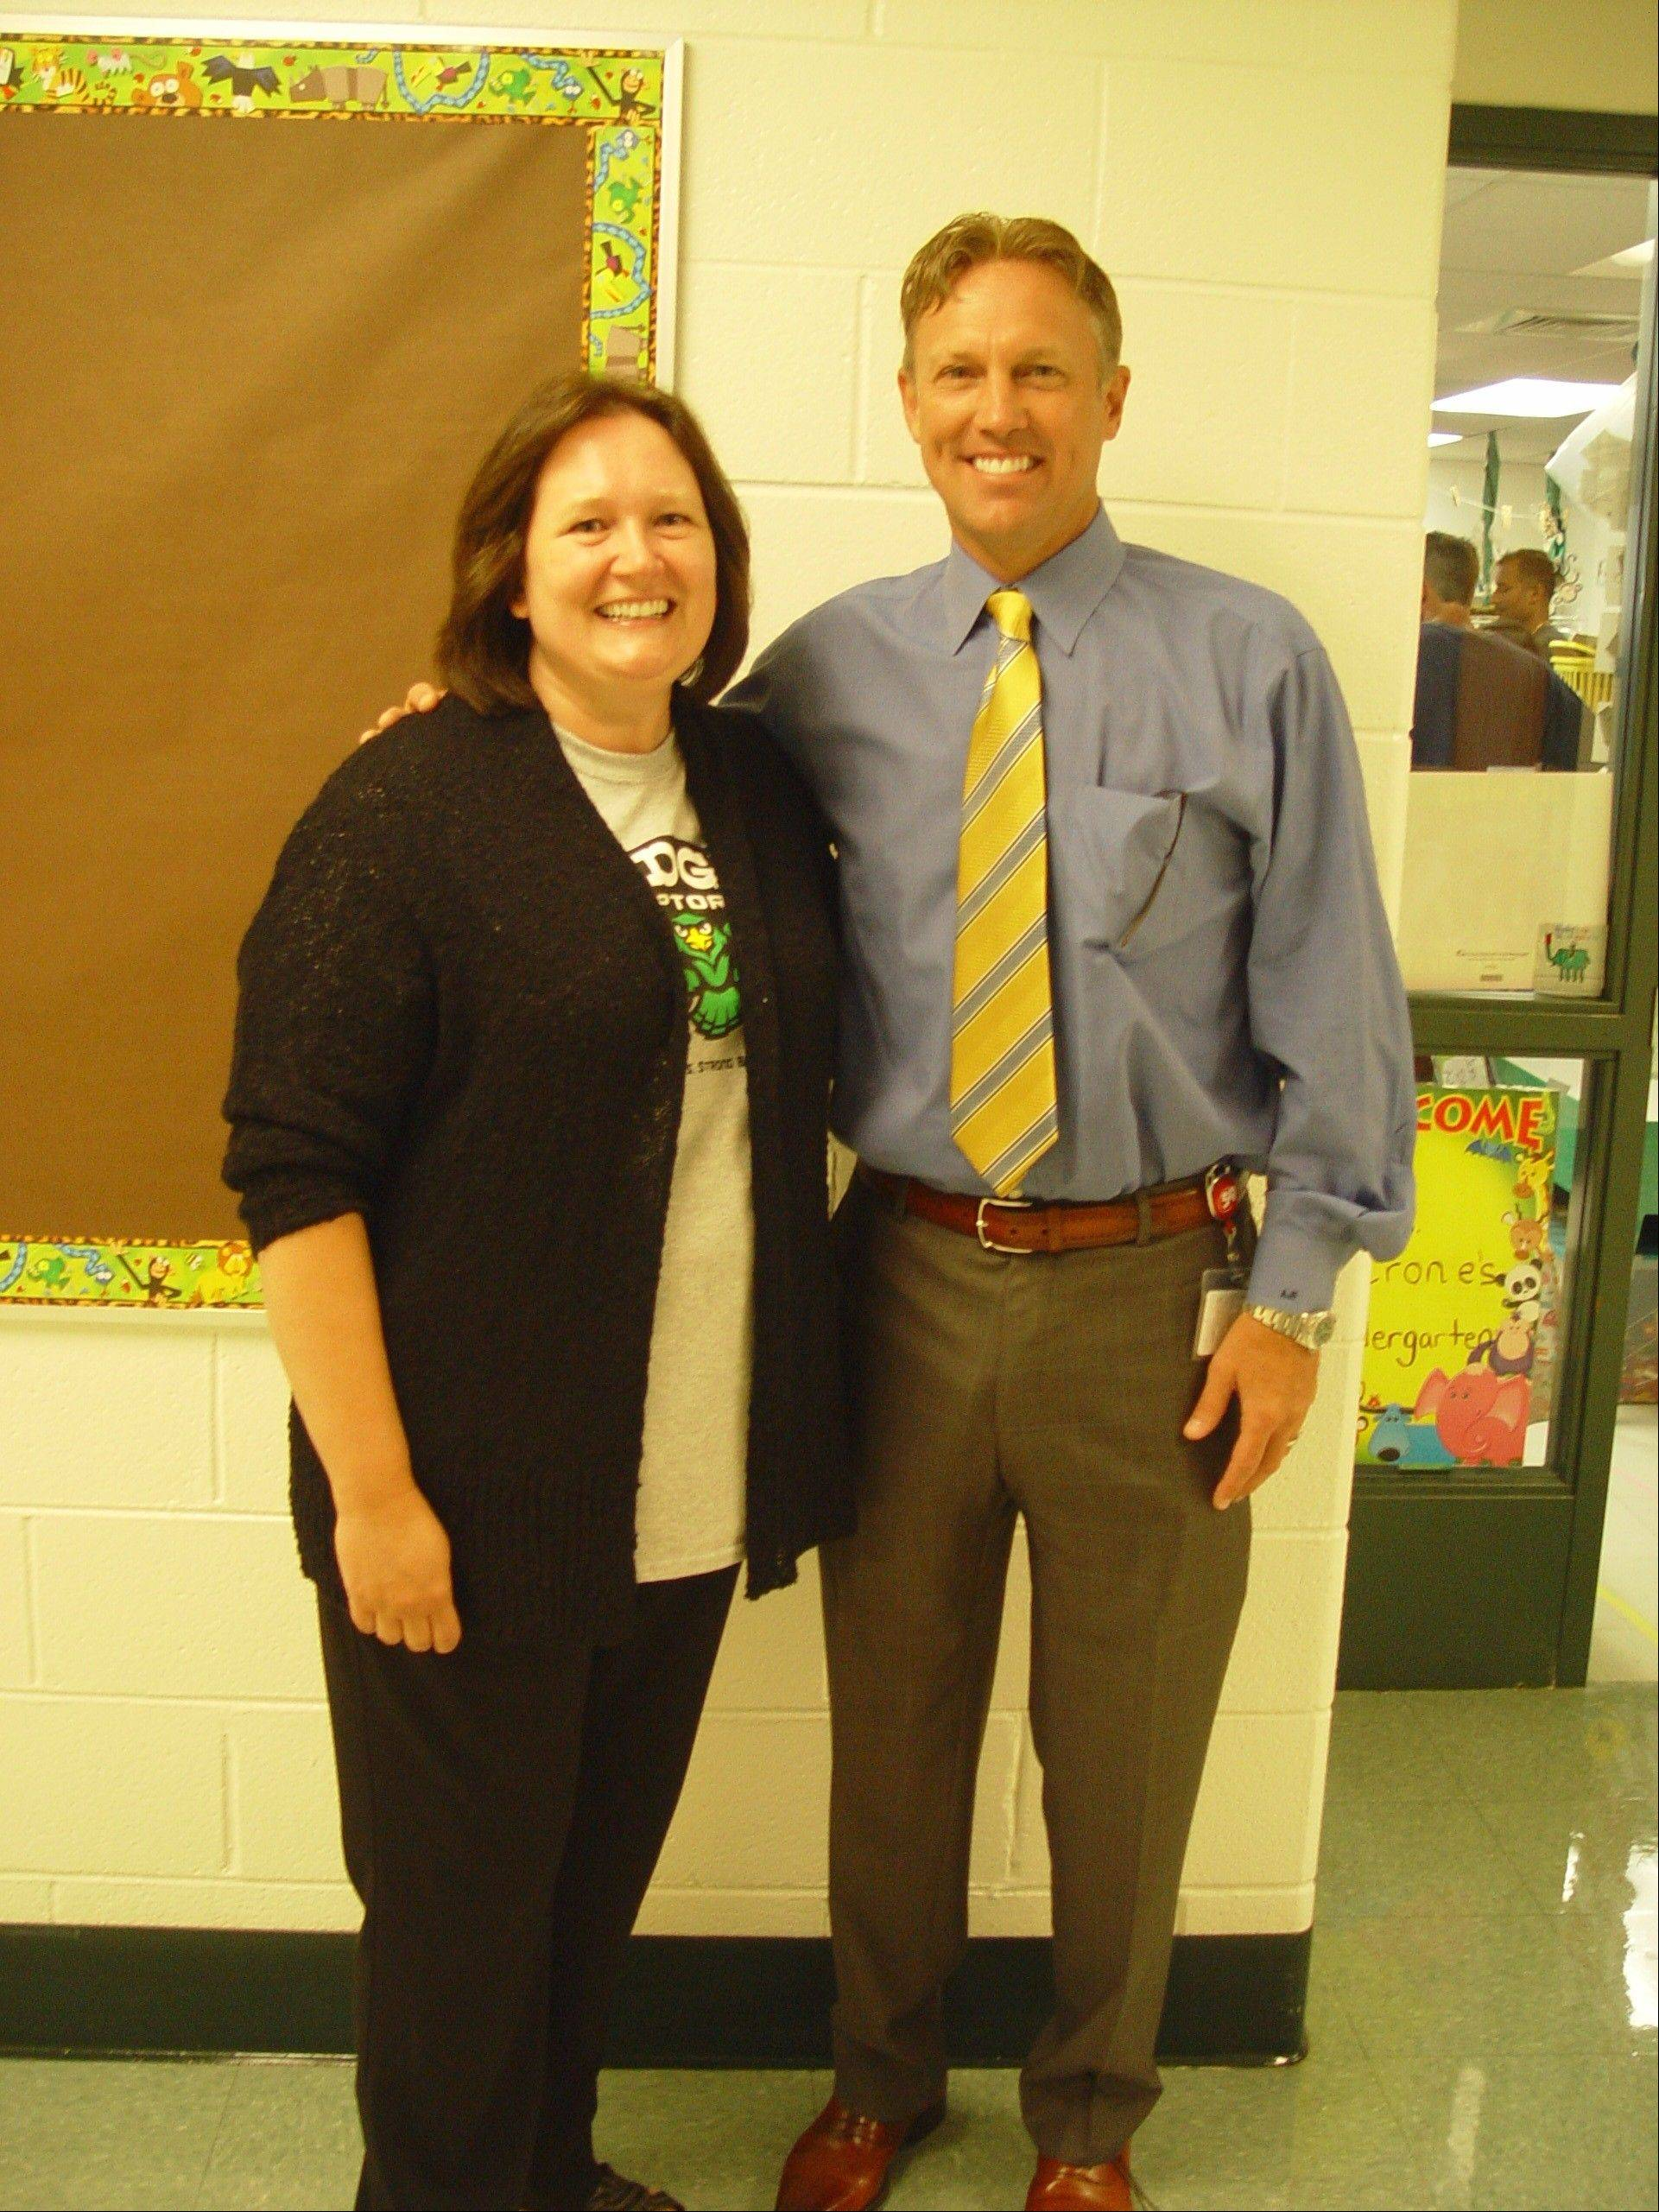 Ridge Family Center for Learning Principal Michele Ramsey and Art Fessler, the new superintendent of Elk Grove Township District 59, were on hand Wednesday to welcome staff and families to the new school year. Ramsey took over July 1 from interim superintendent Mark Friedman.